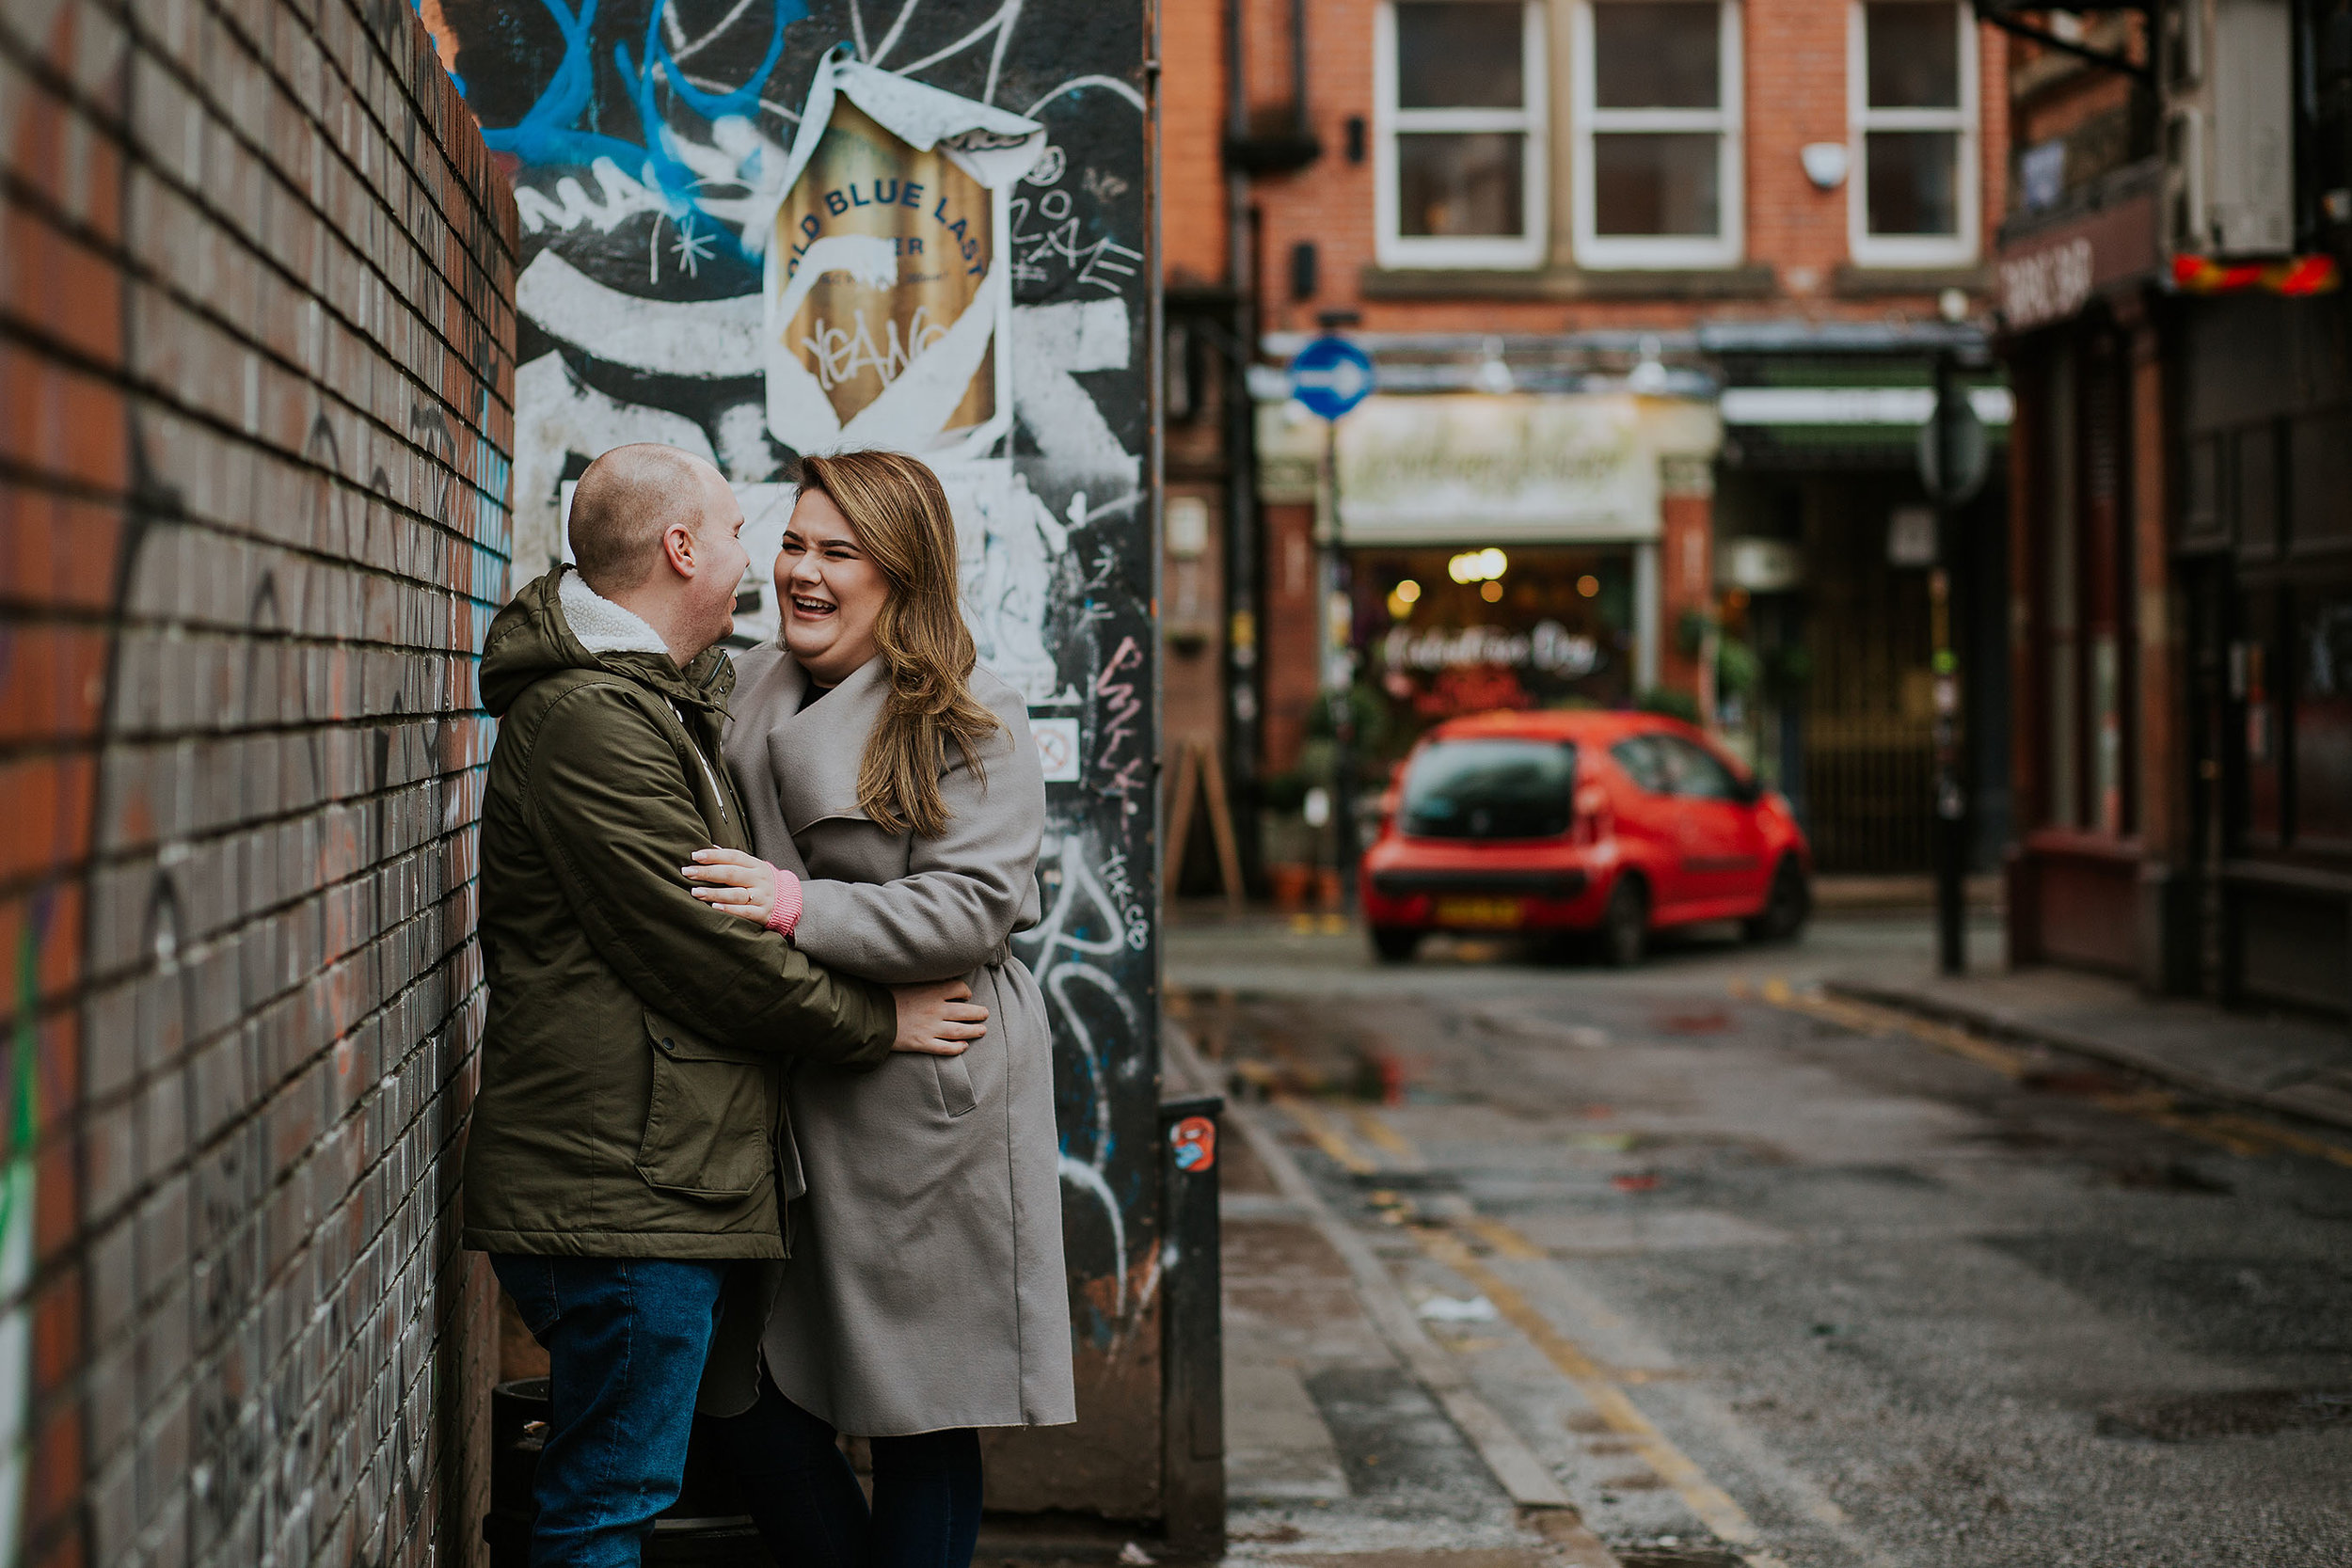 Northern Quarter engagement photography Manchester